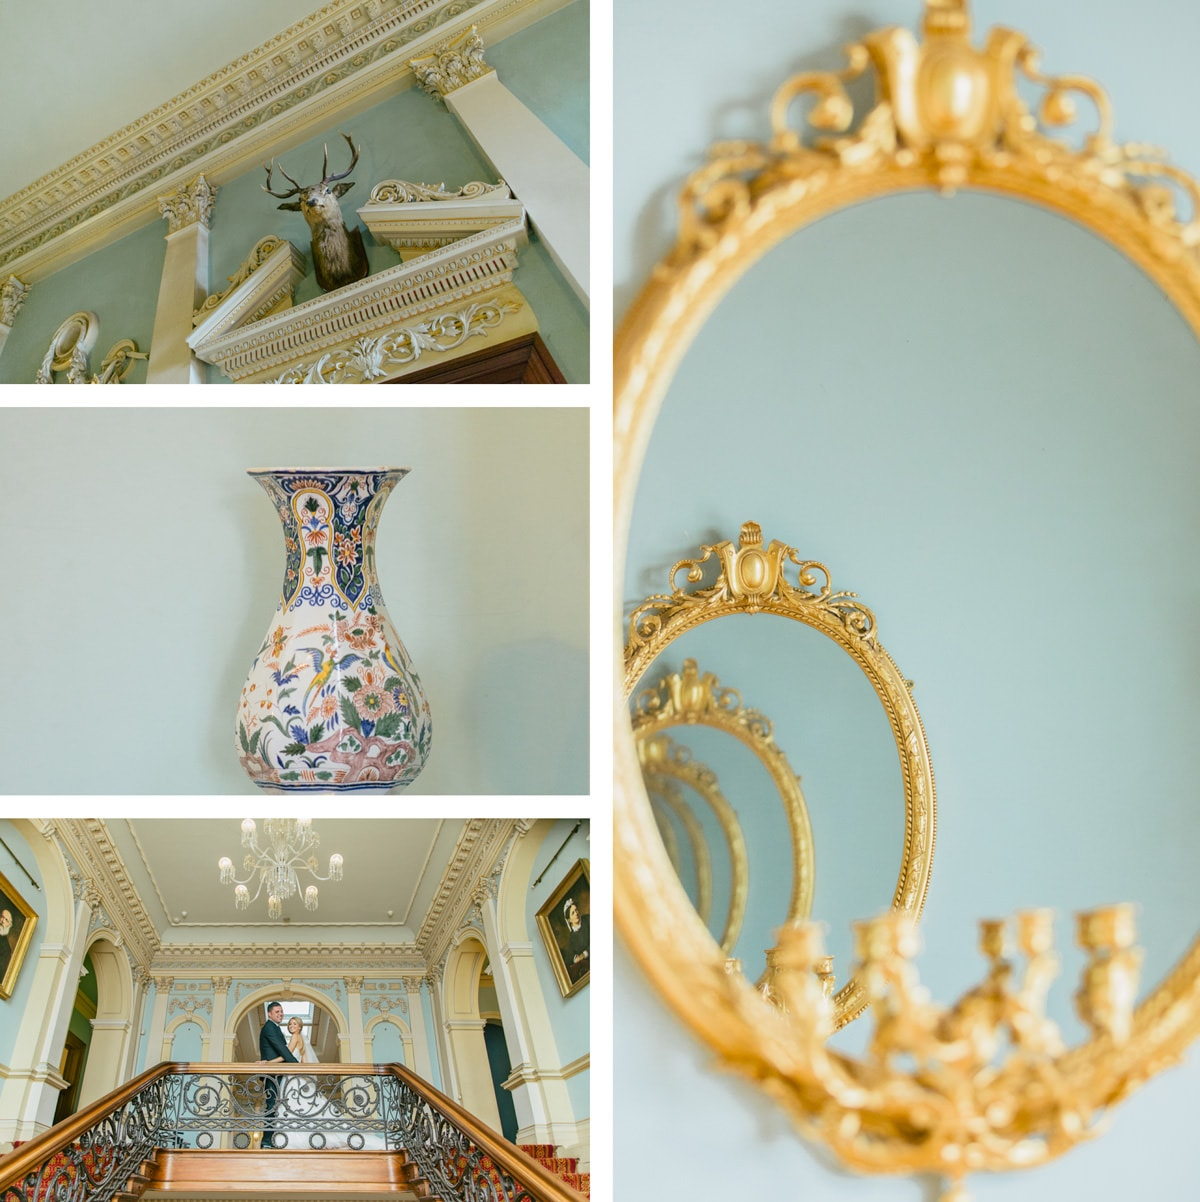 luxury details in a different time - wedding photography at werribee mansion - old paintings and building in the 1870s